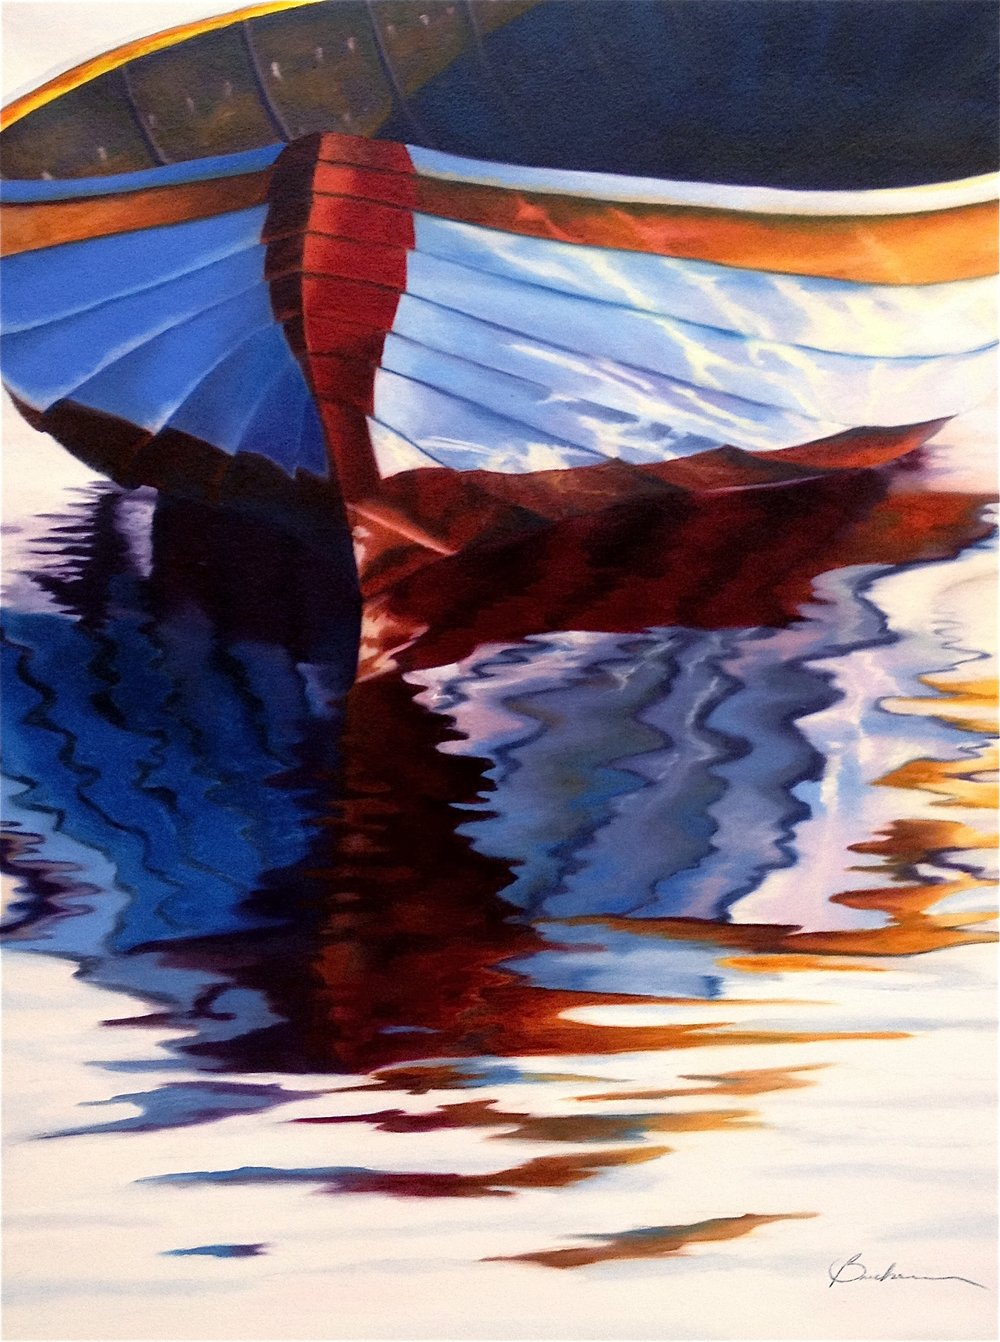 Boat and Reflection.jpg